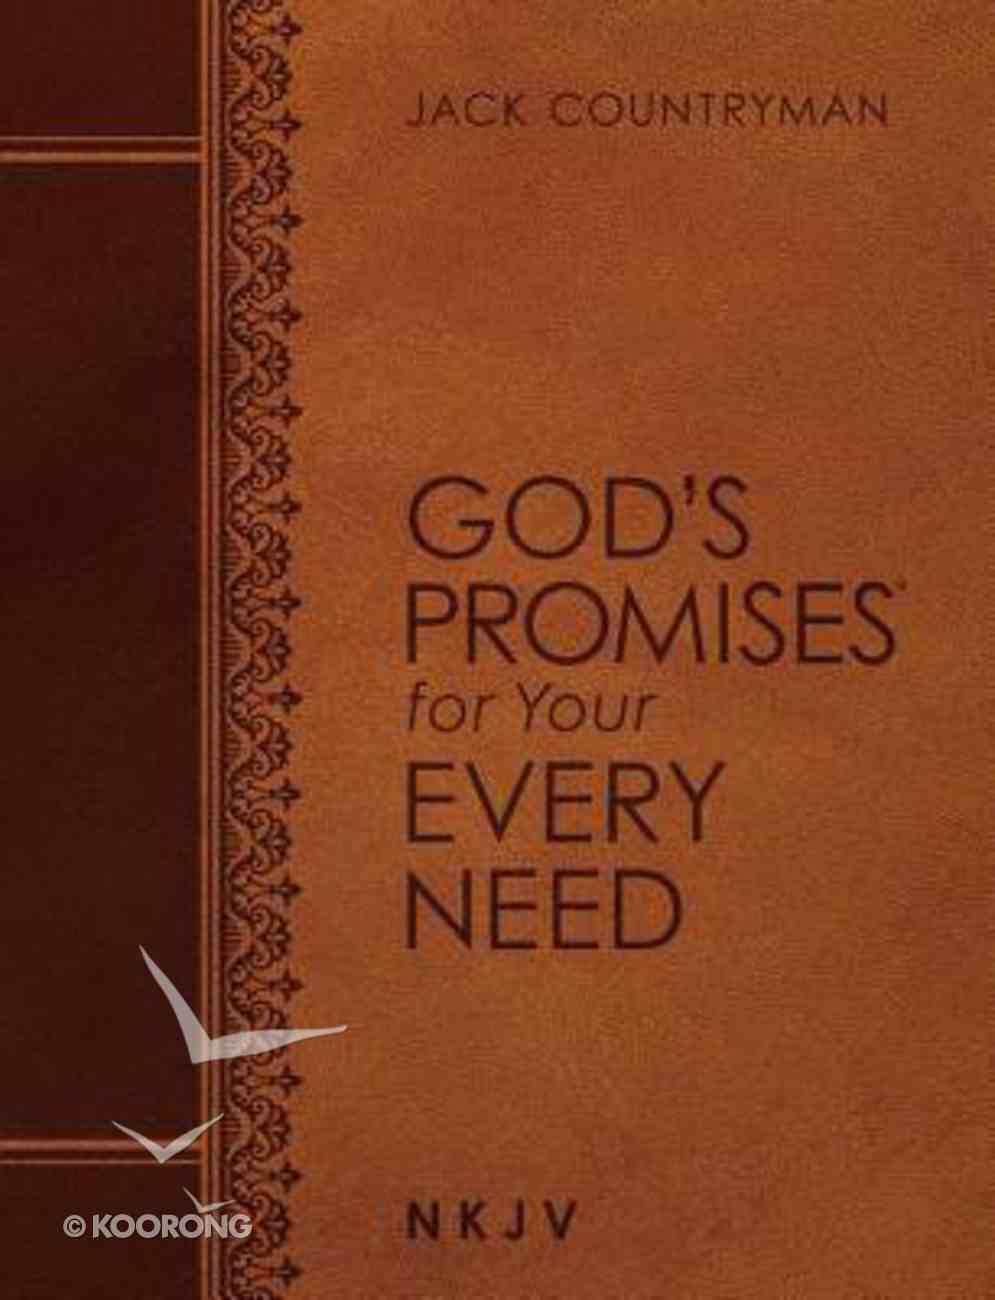 God's Promises For Your Every Need NKJV (Large Print, Leathersoft) Imitation Leather